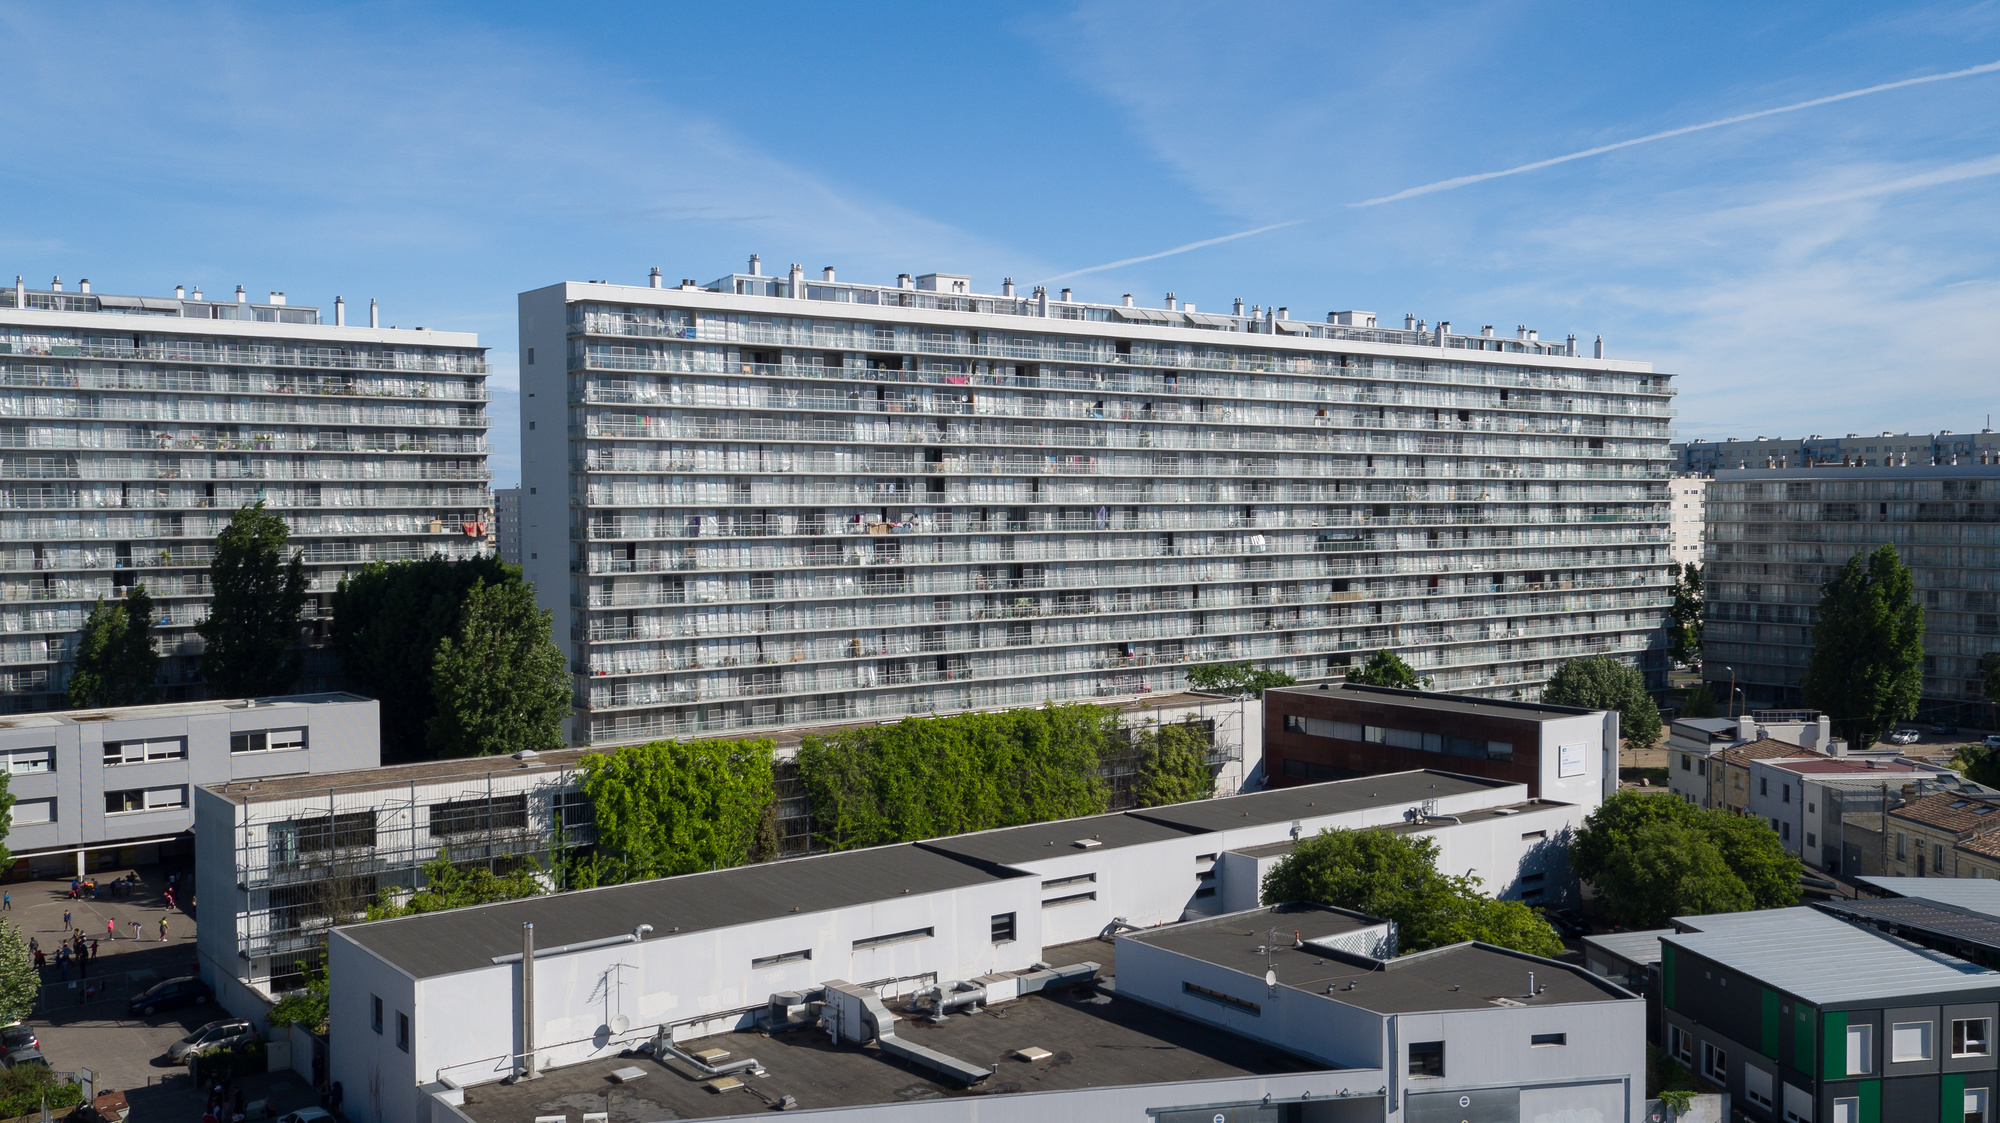 Transformation of G, H, I Buildings, Grand Parc, 530 Units, Social Housing (with Frédéric Druot and Christophe Hutin), Philippe Ruault